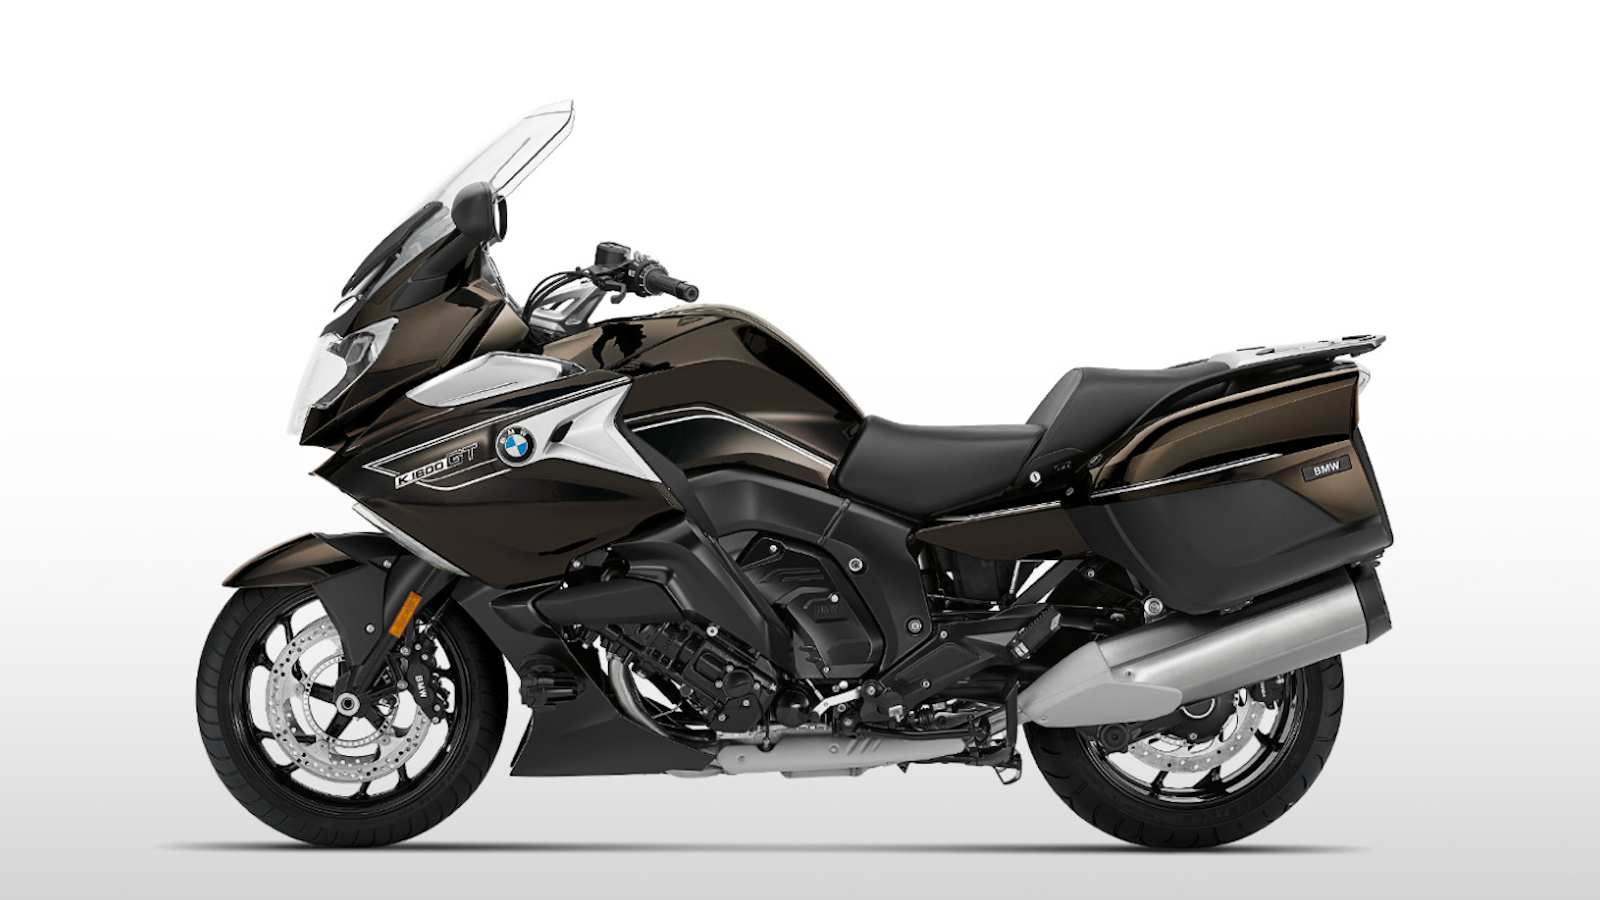 66 The Best BMW K1600Gt 2020 Wallpaper